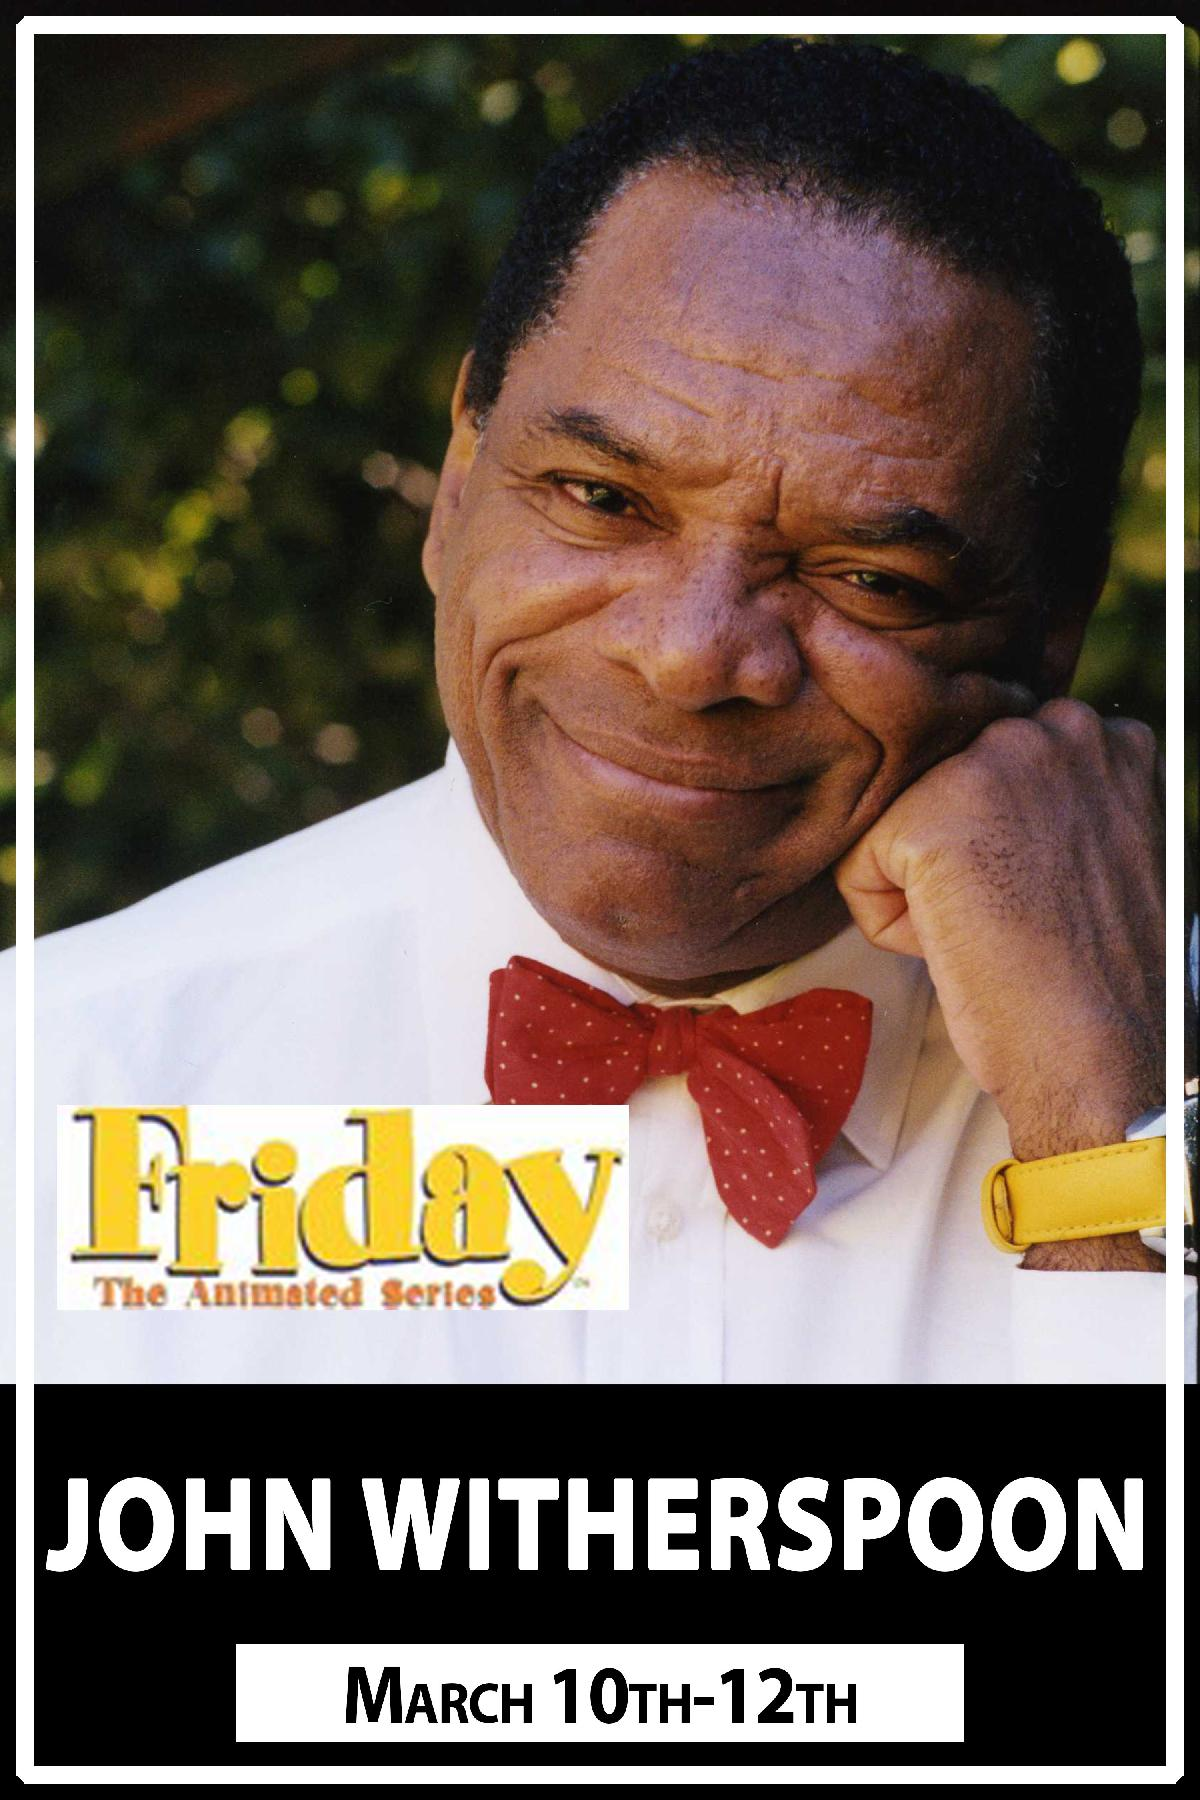 John Witherspoon from the Friday movies and much more live at Zanies Comedy Club Nashville March 10-12, 2016